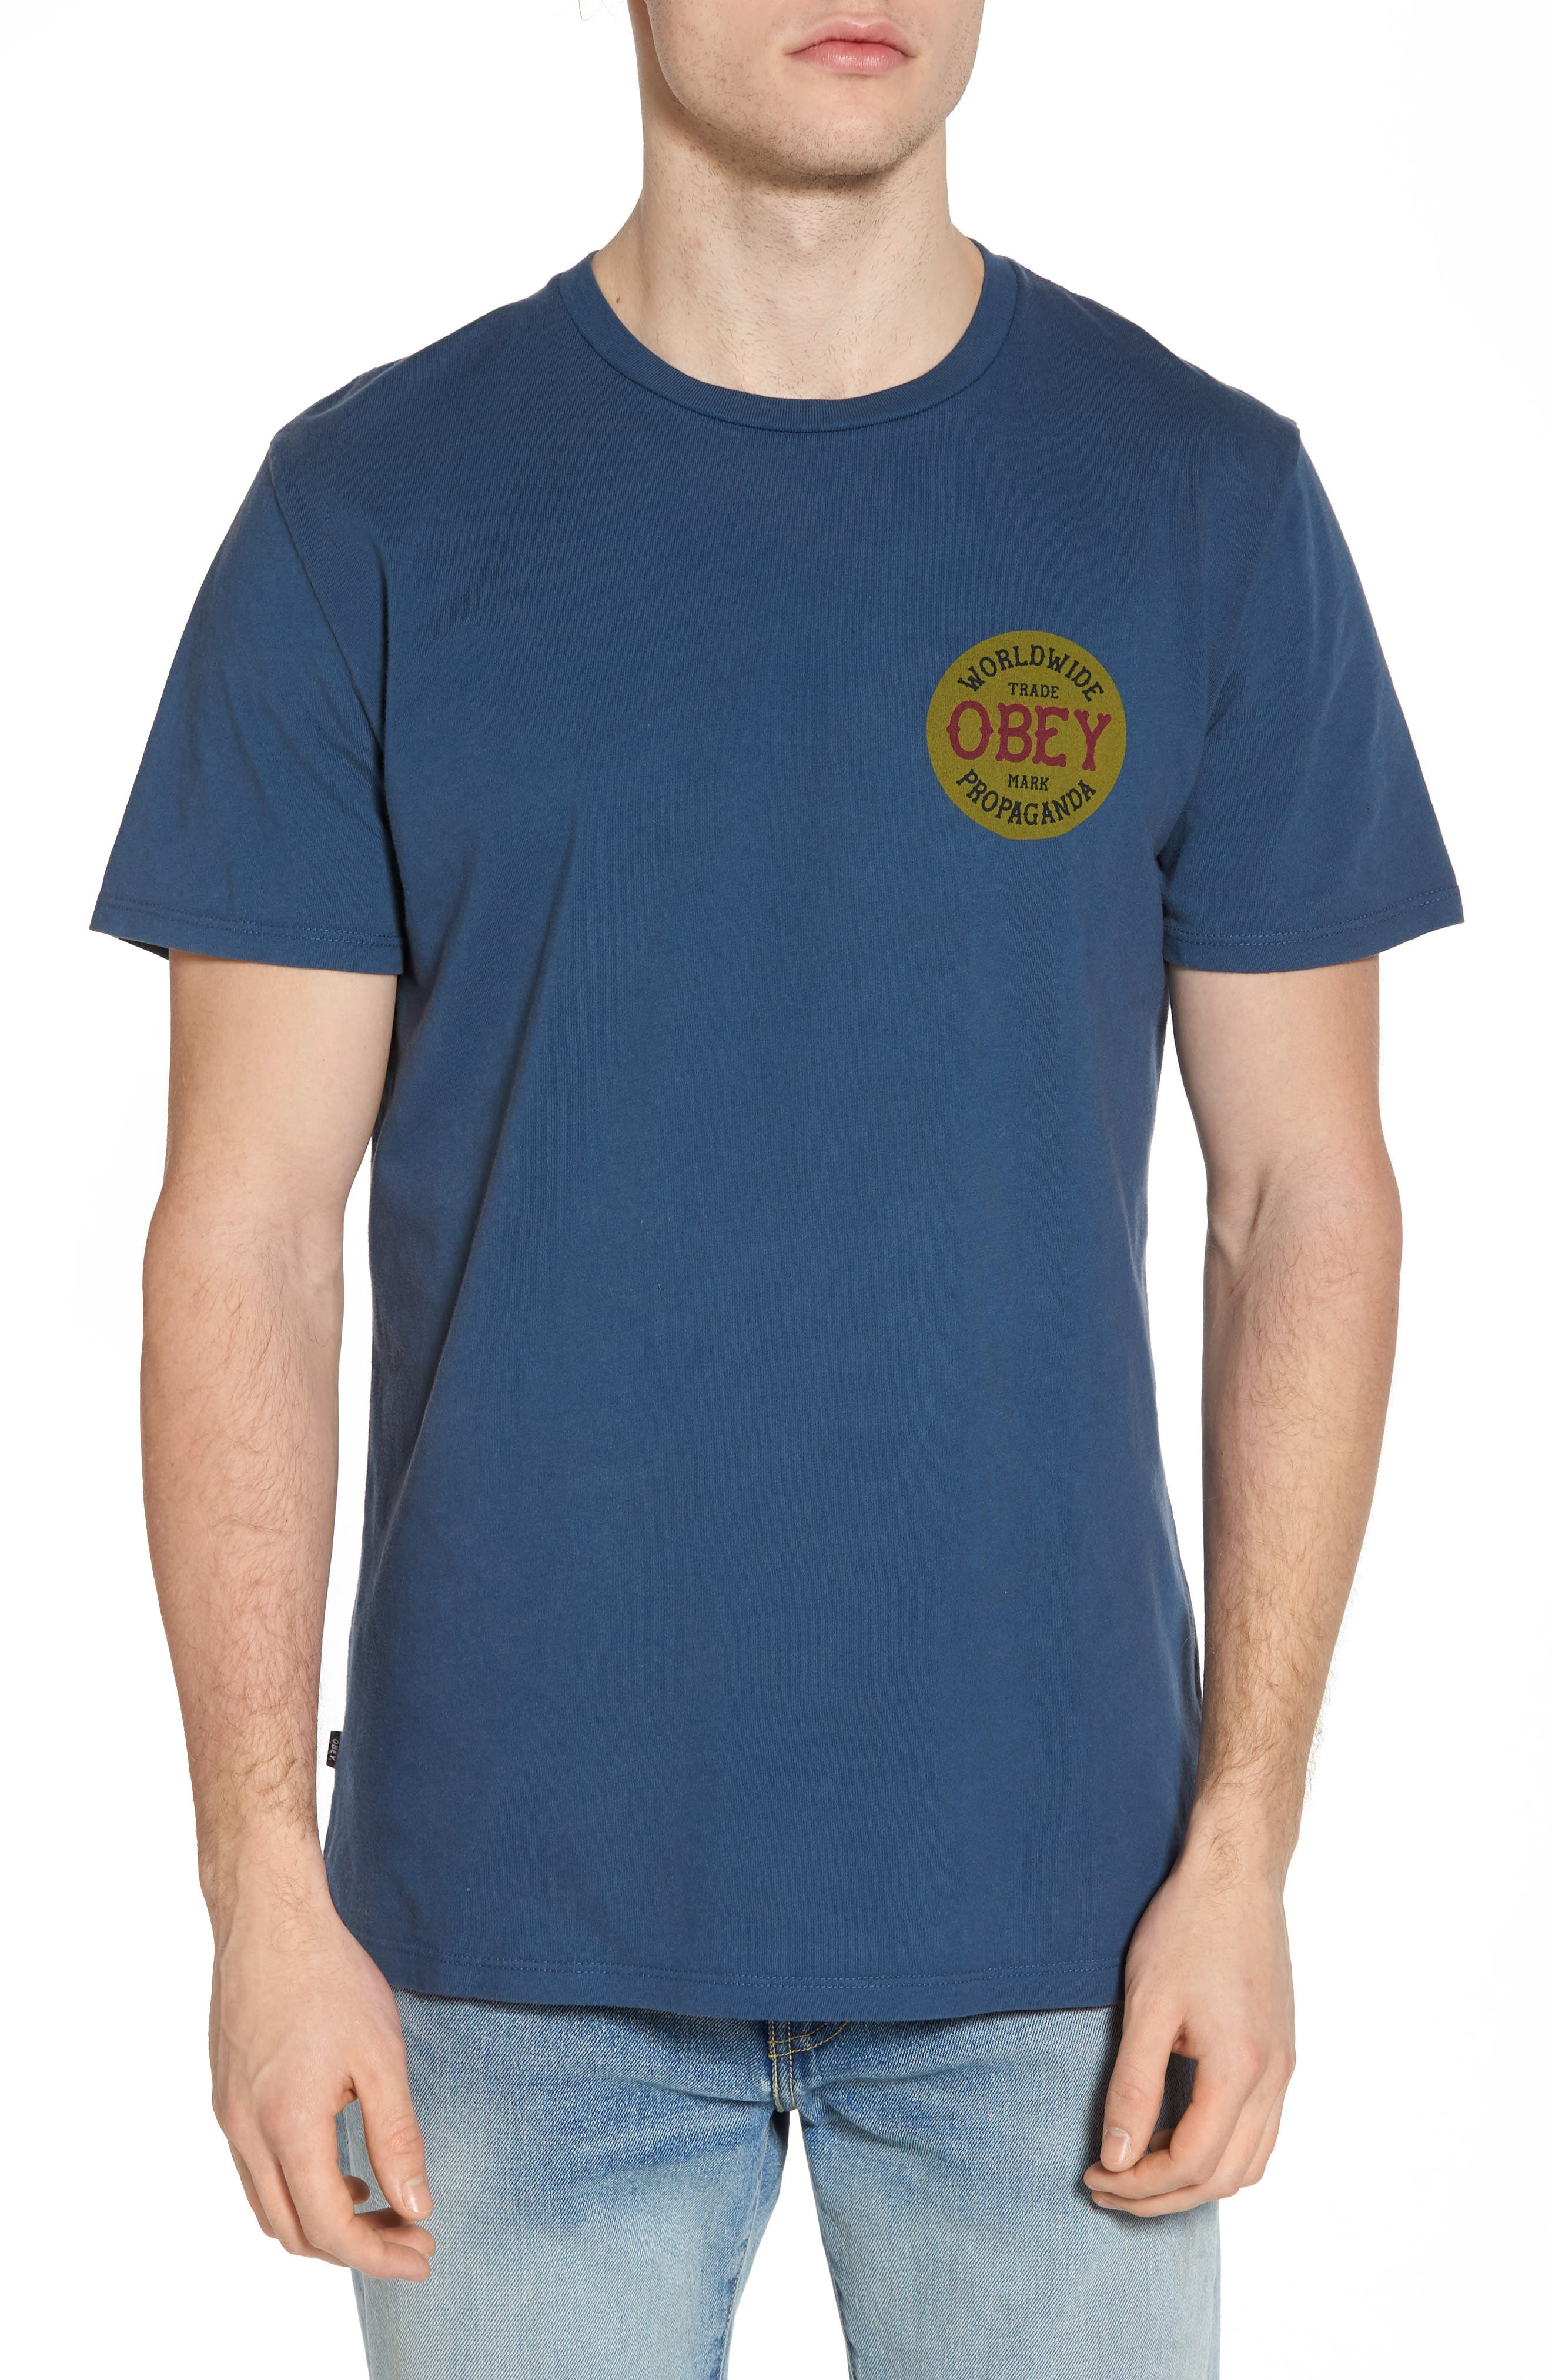 Obey Trademark Graphic T-Shirt